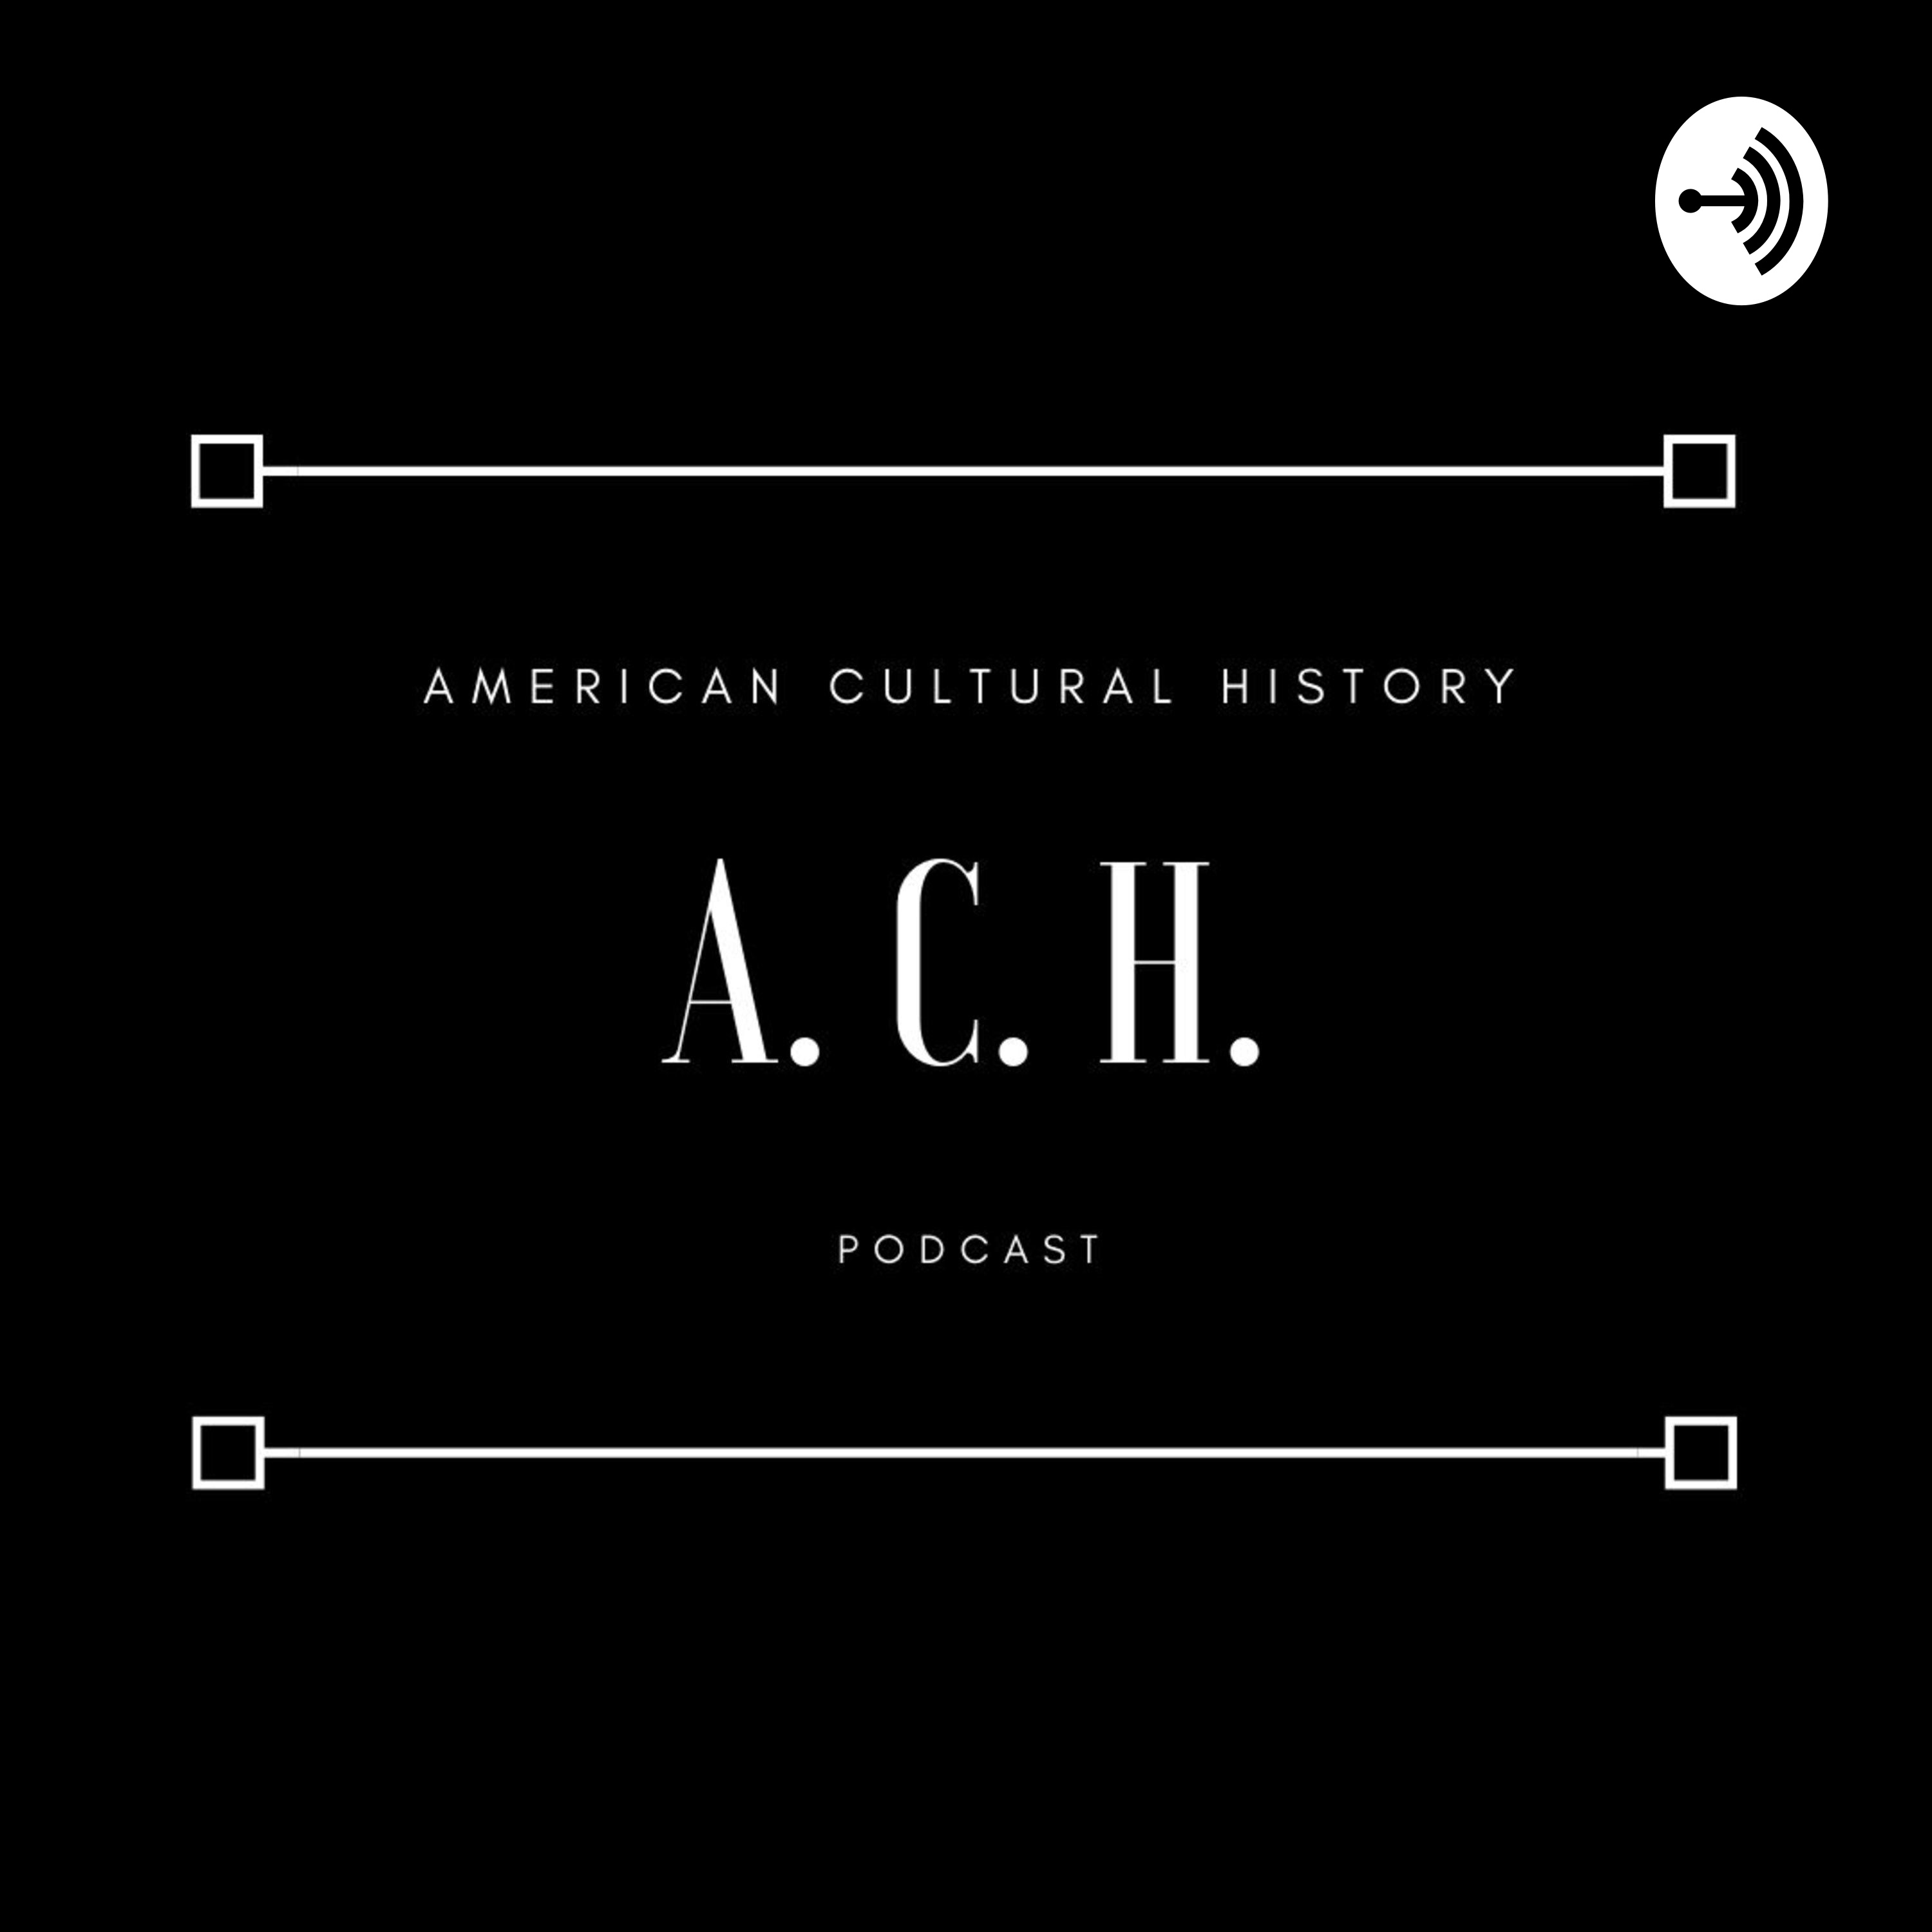 American Cultural History | Listen via Stitcher for Podcasts